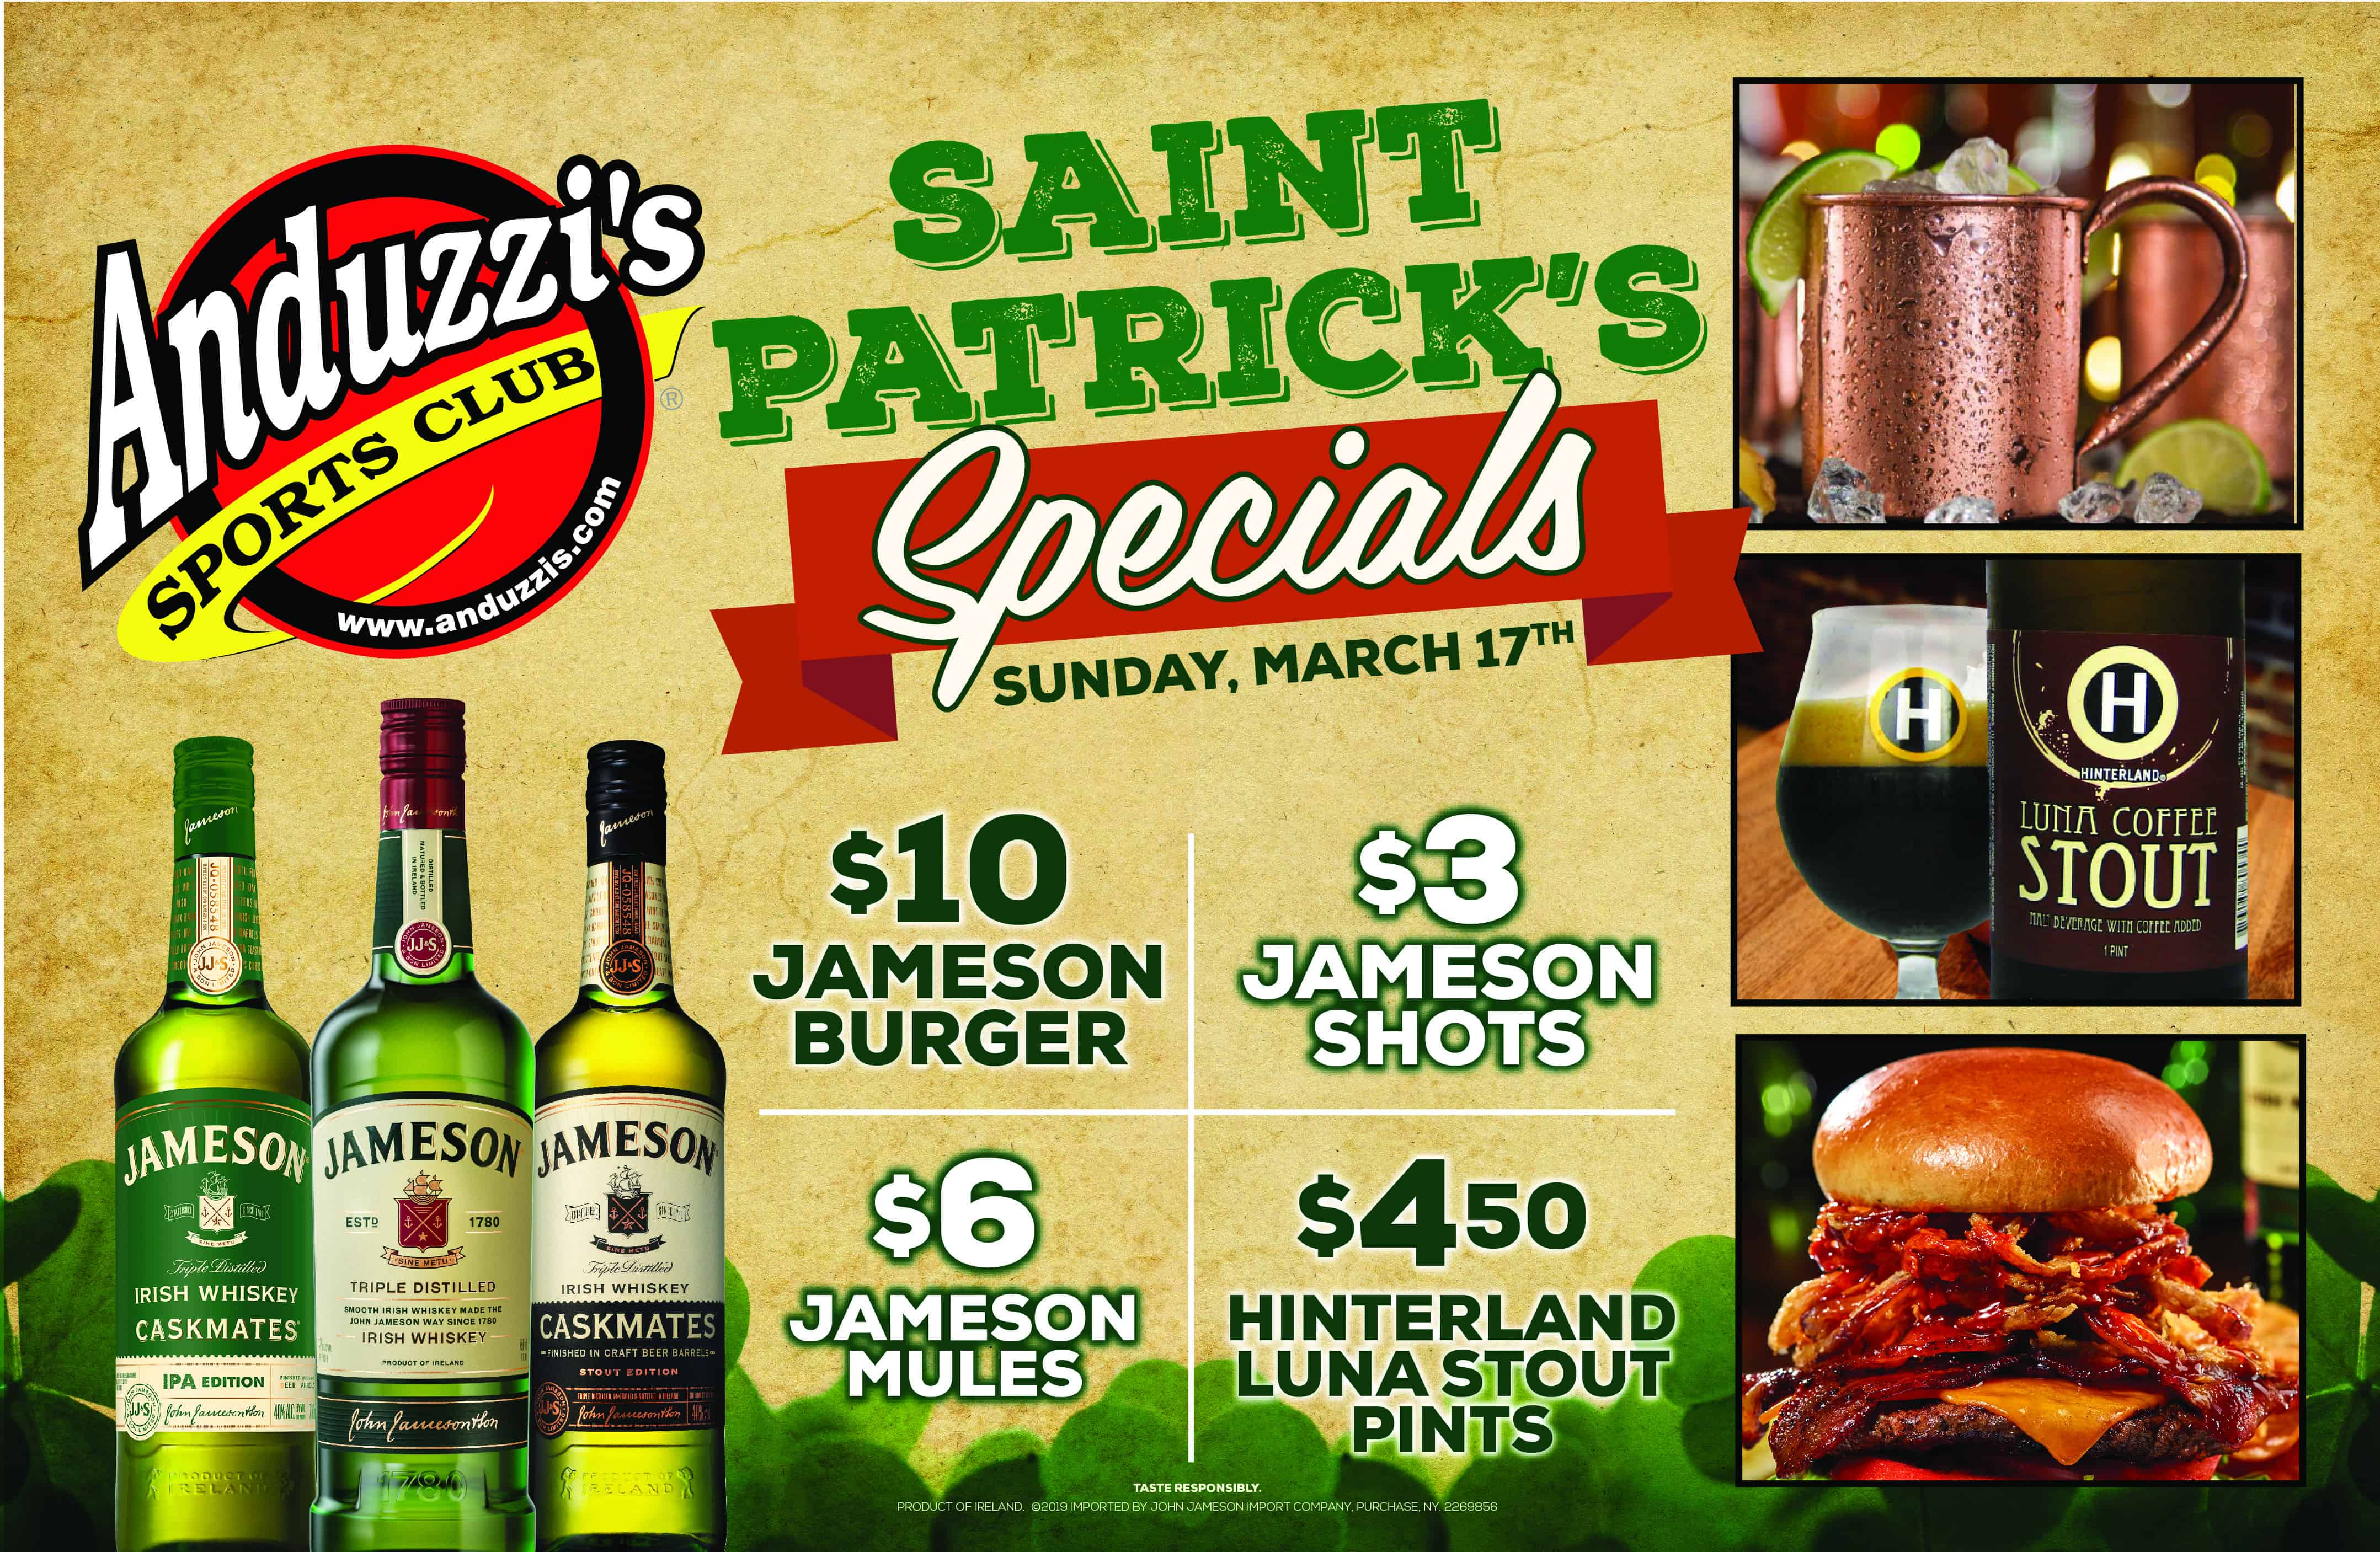 St. Patricks Specials Poster - St. Patrick's Day at Anduzzi's!